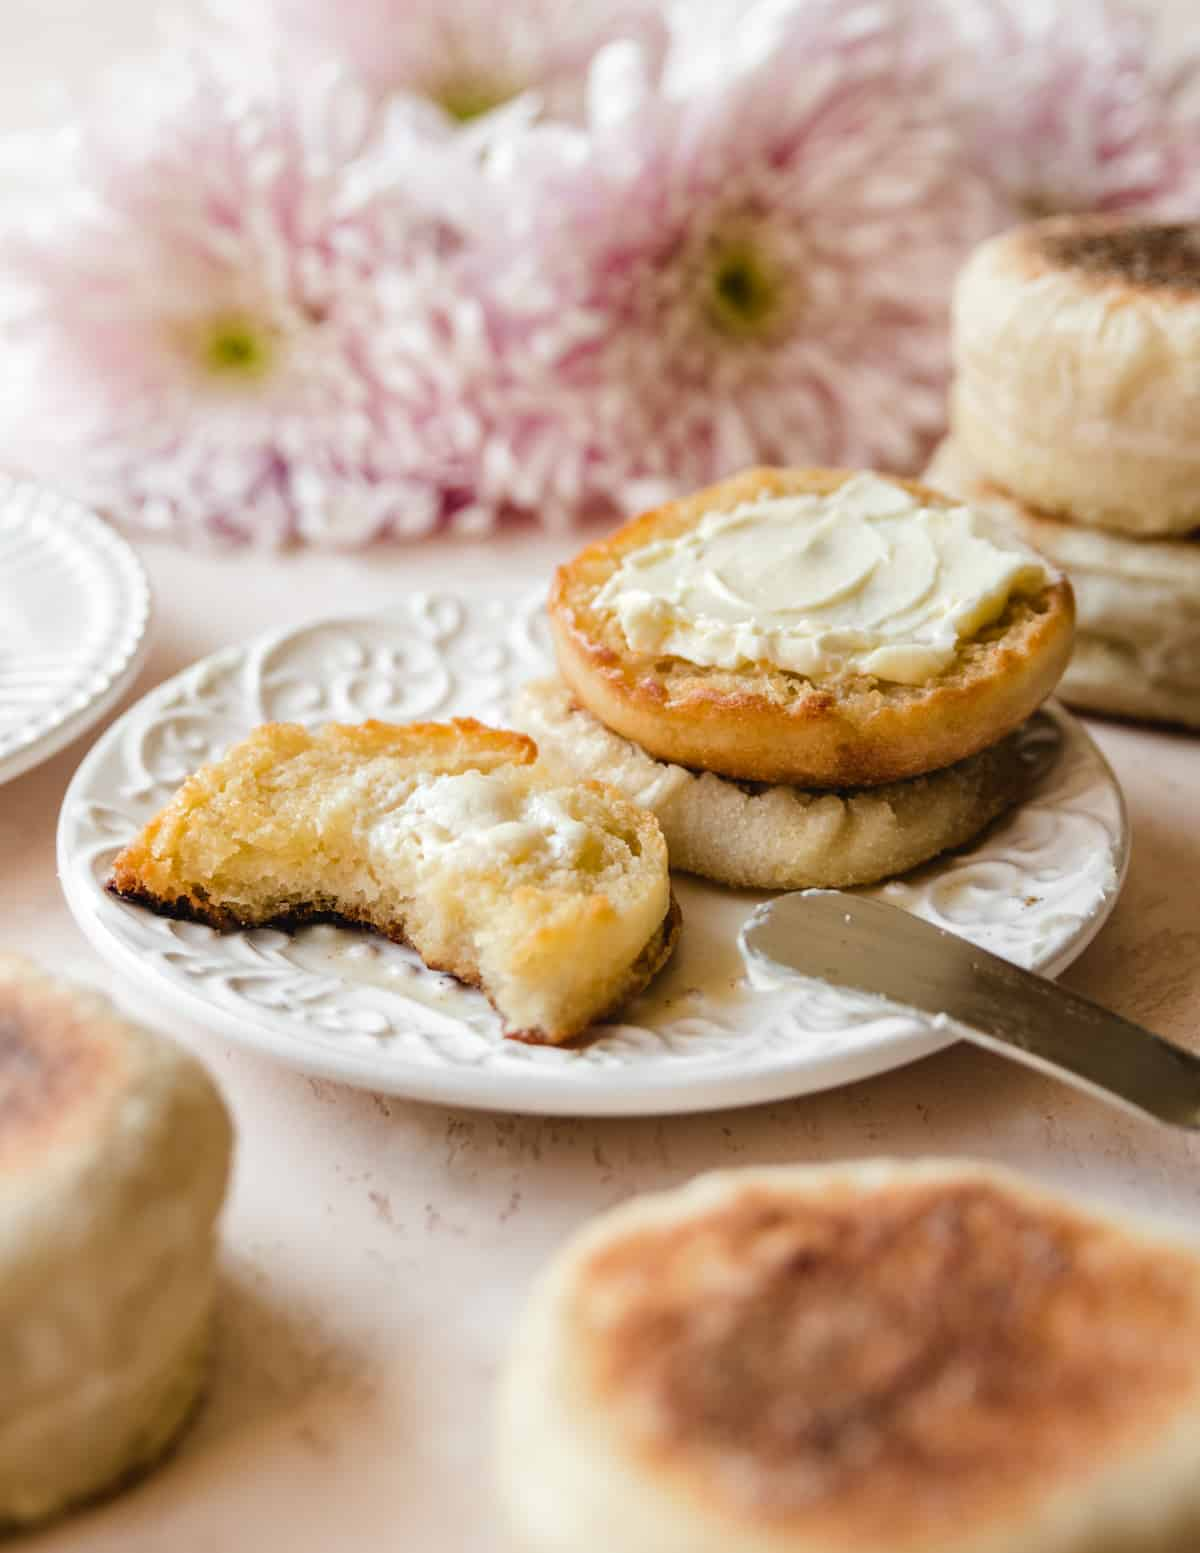 These English muffins are the perfect base for sweet butter or jam for breakfast.